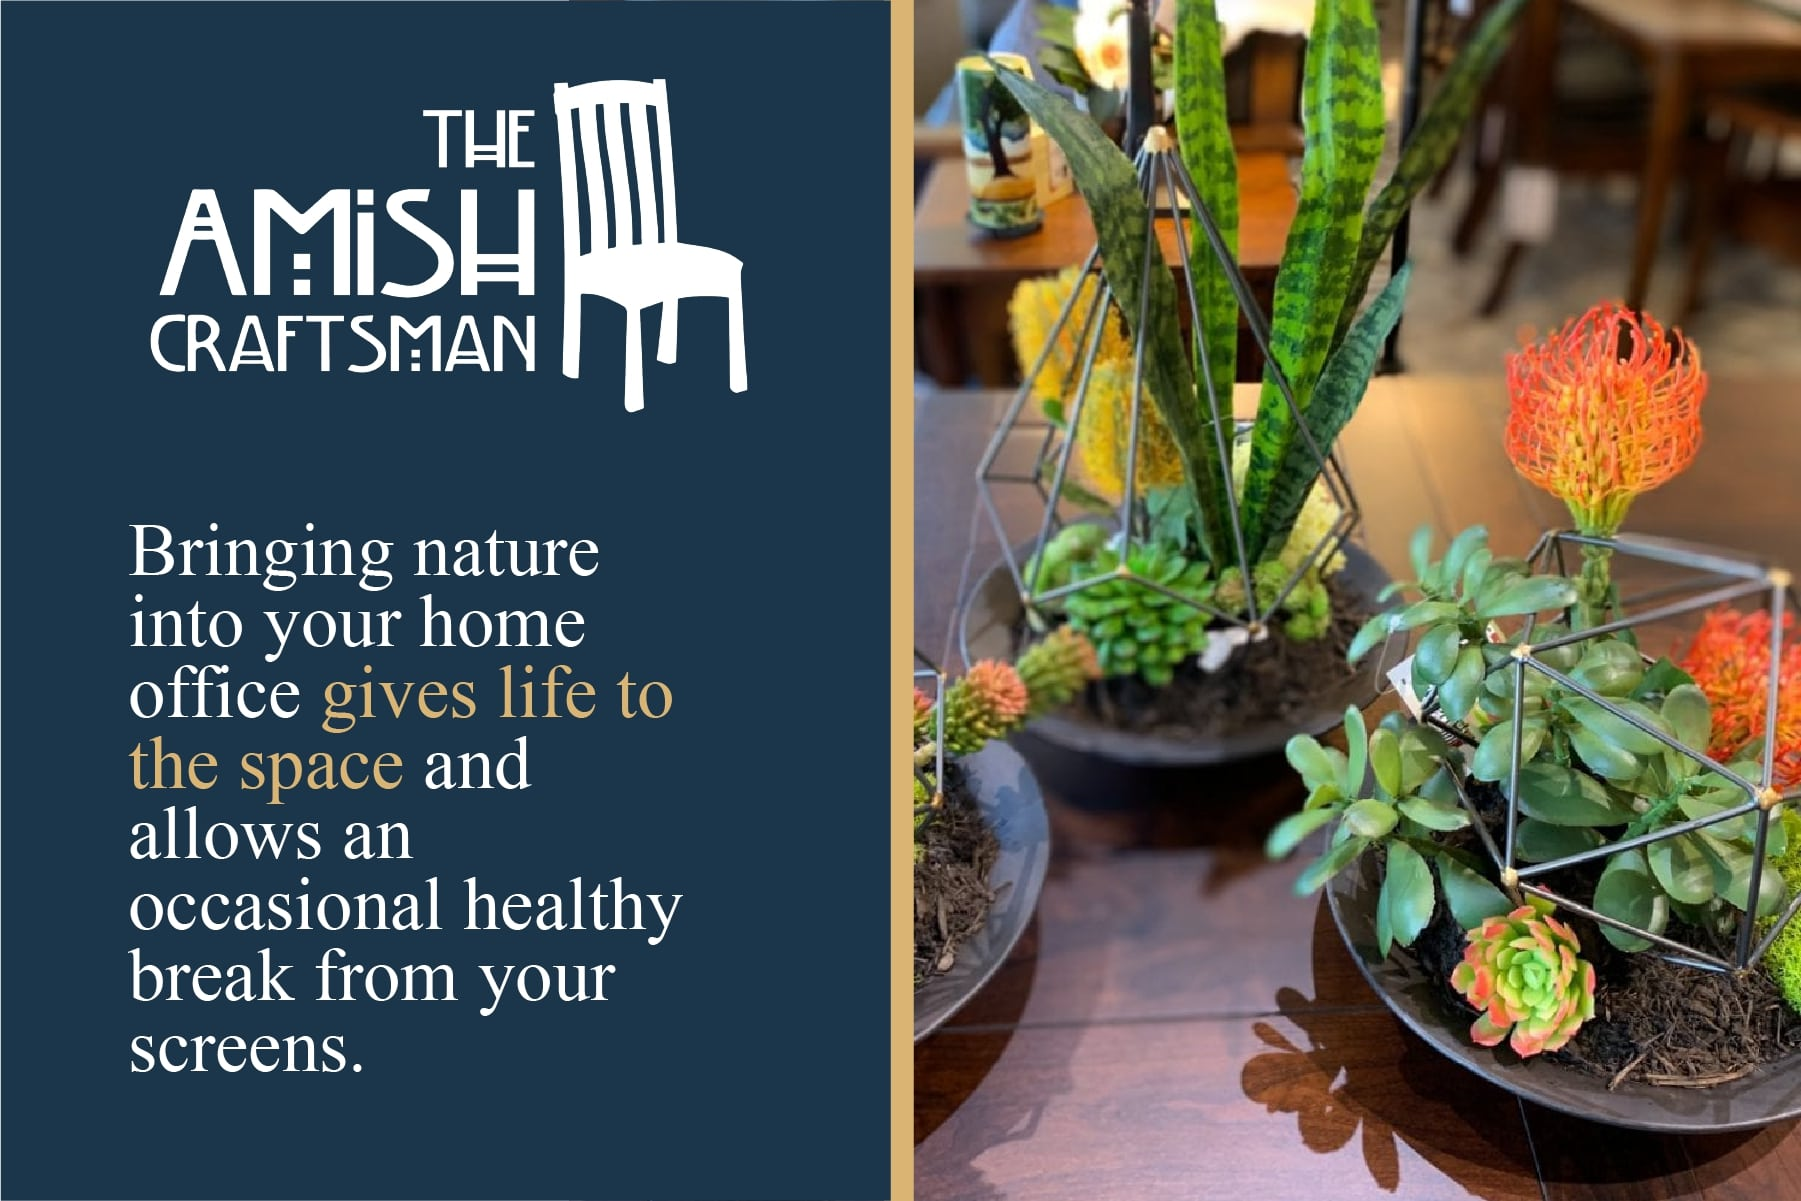 bring nature to your home office